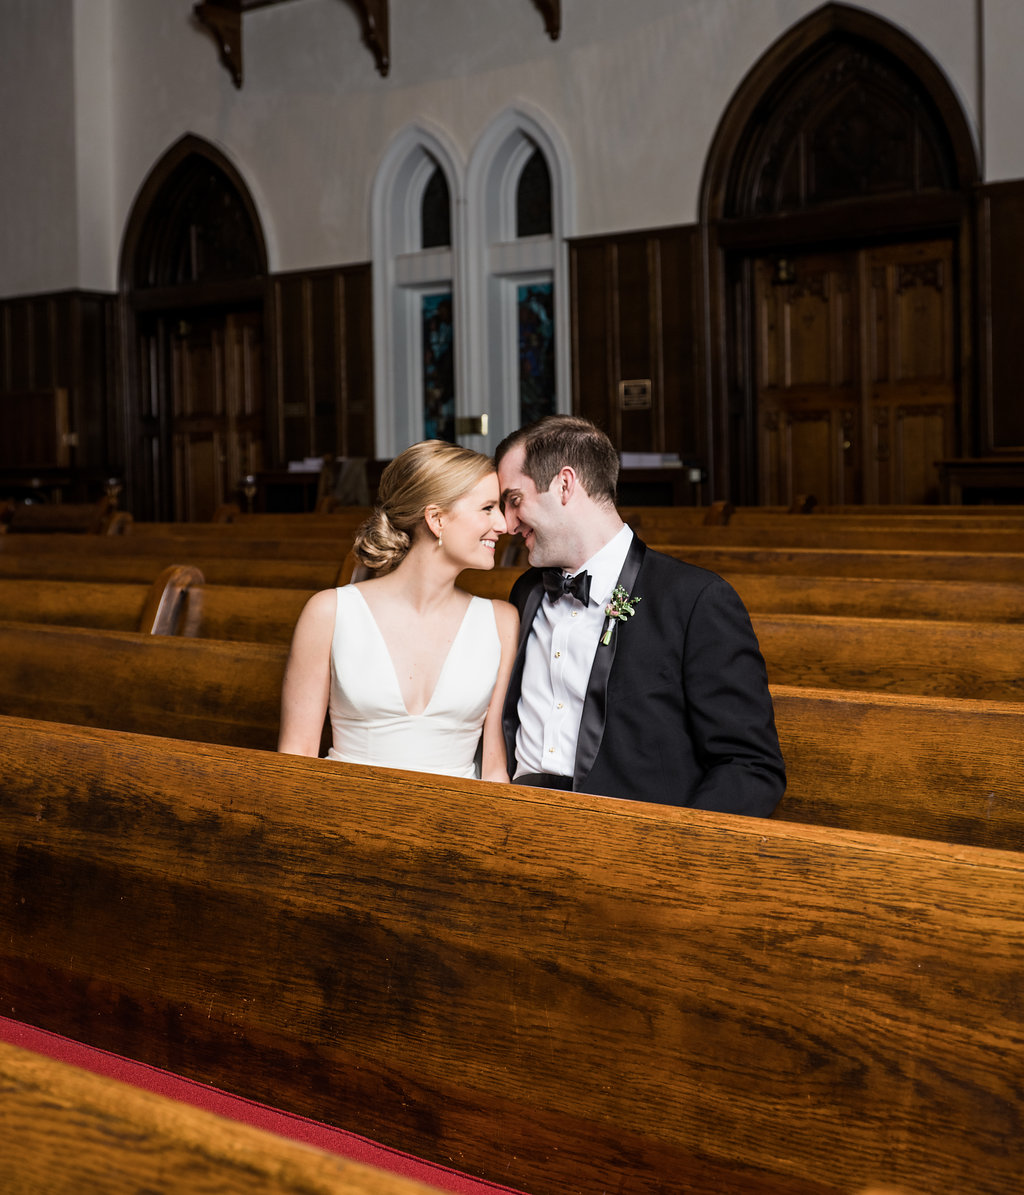 Handley Breaux Designs | Birmingham Wedding | Black Tie Wedding | Southern Wedding | Southern Bride | 509 Photography